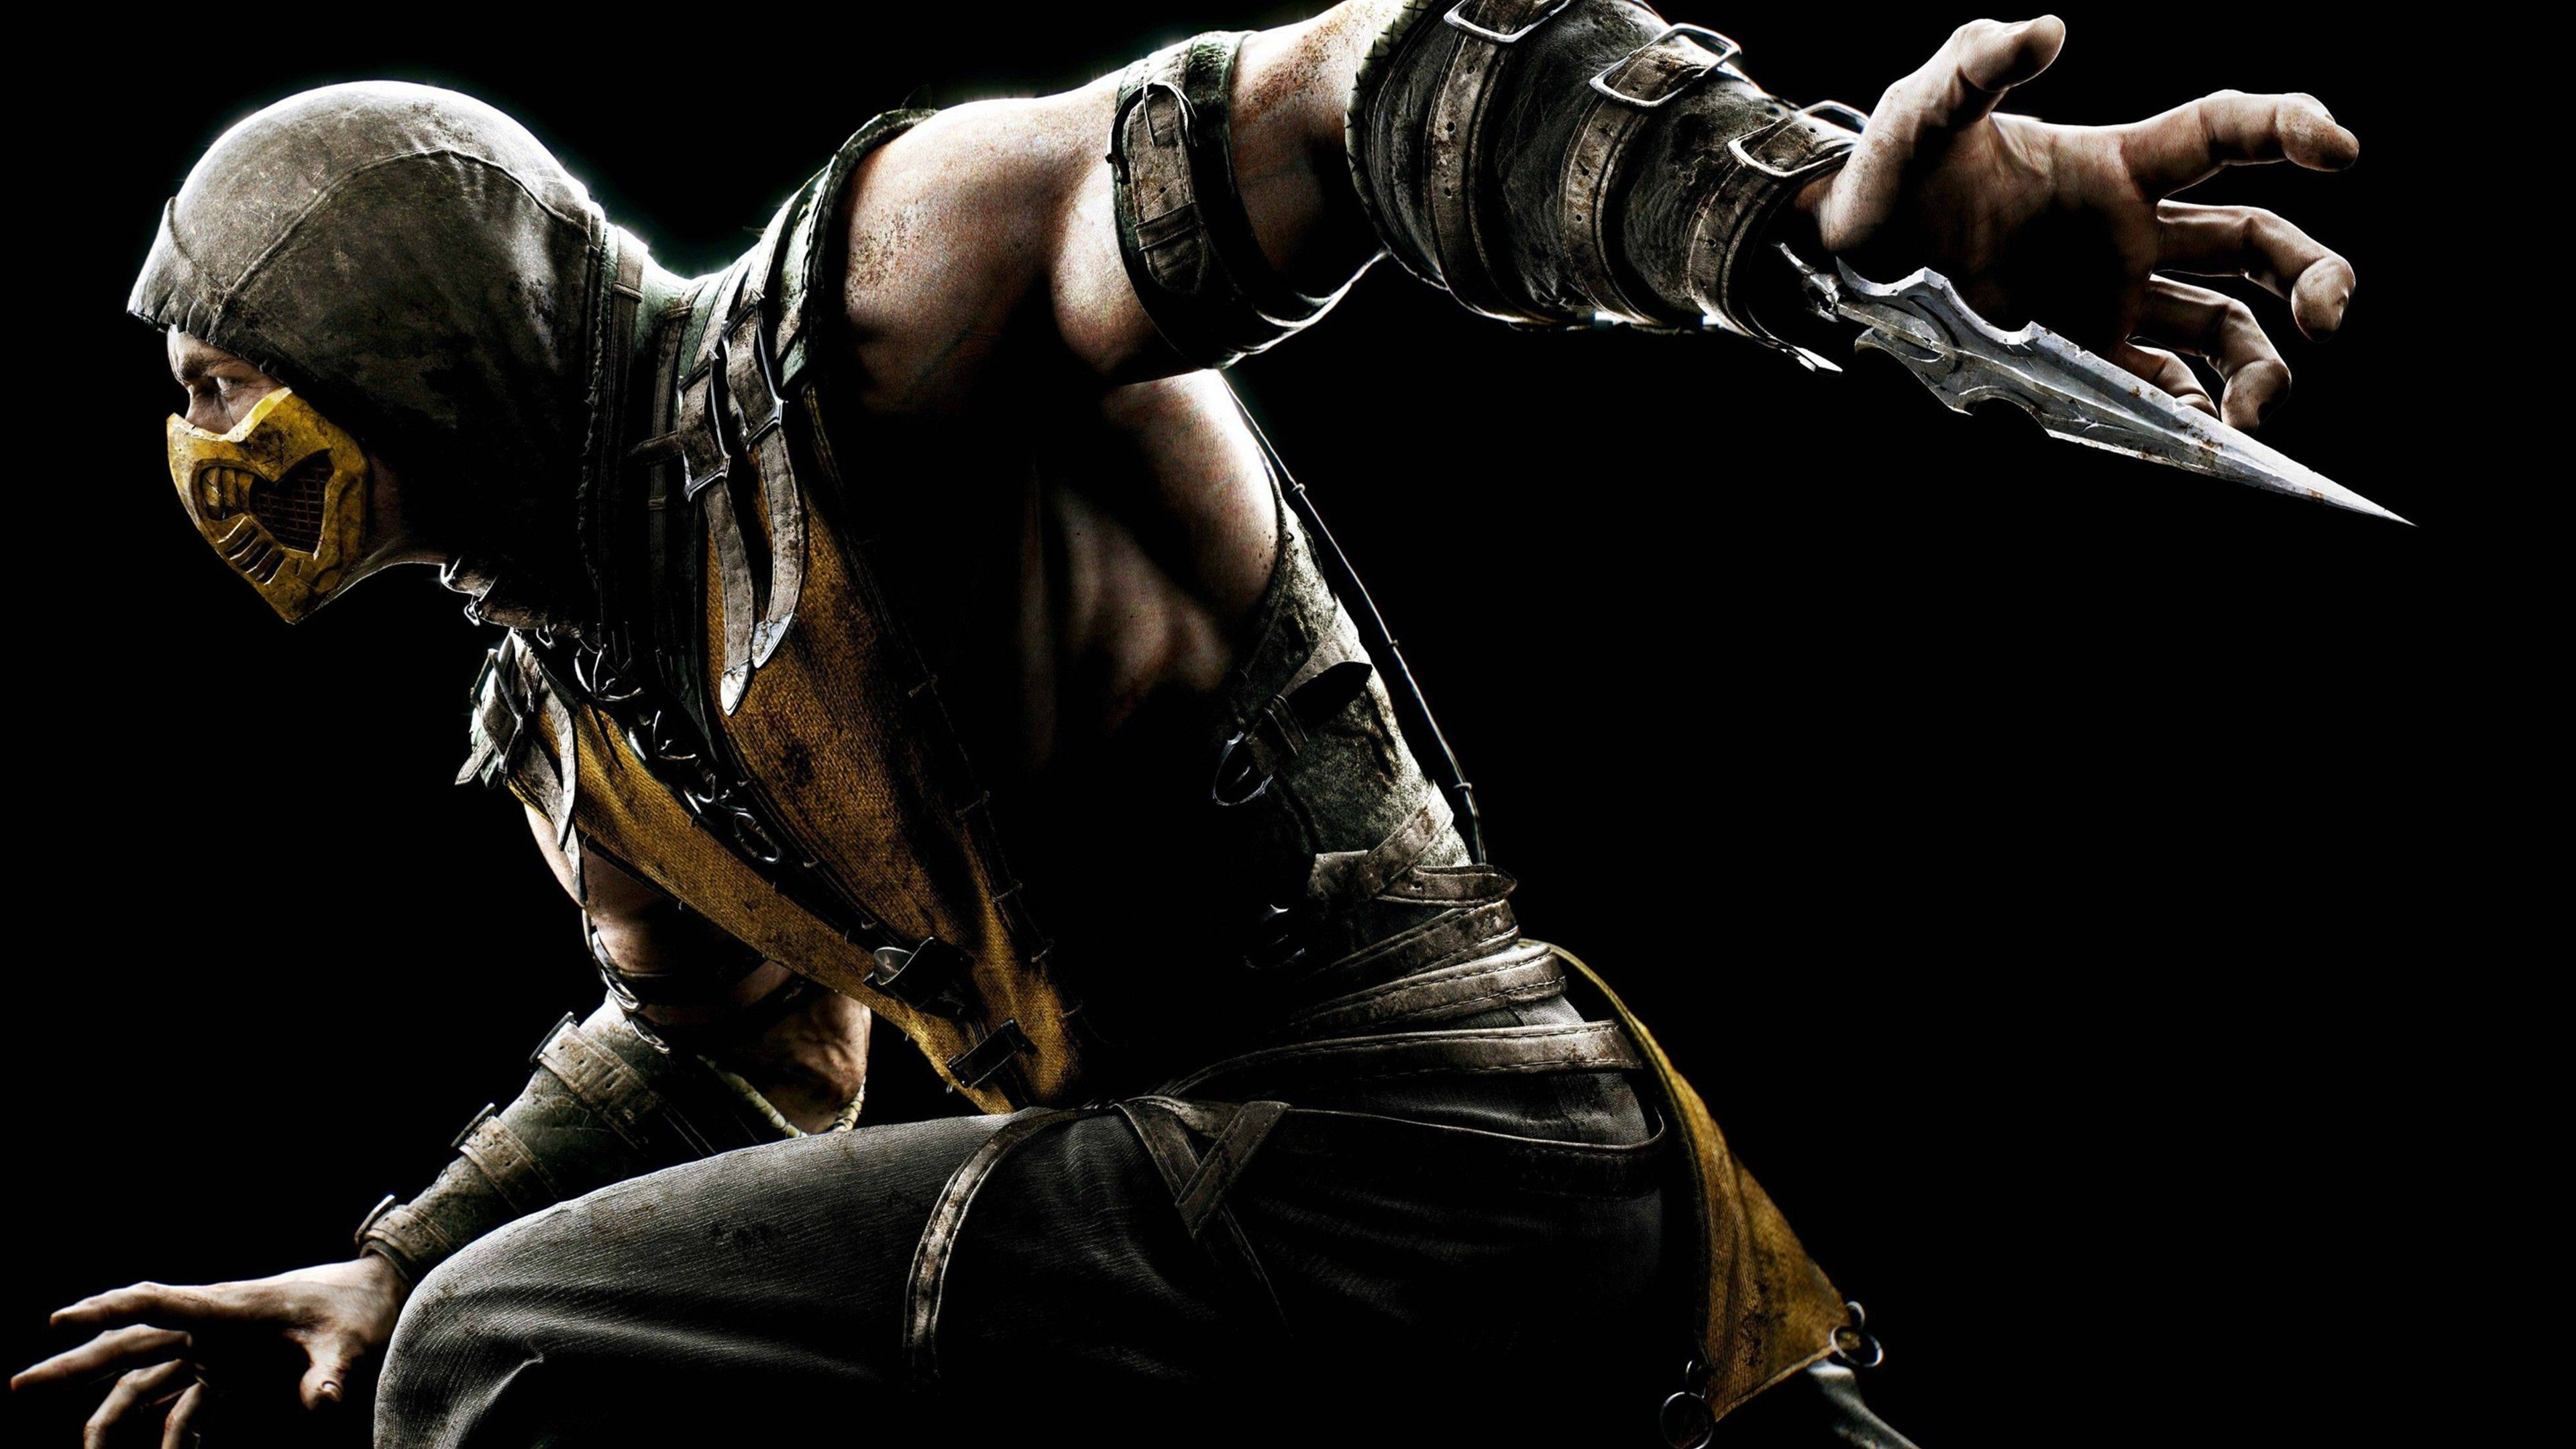 Wallpaper 4k Mortal Kombat X Scorpion games wallpapers